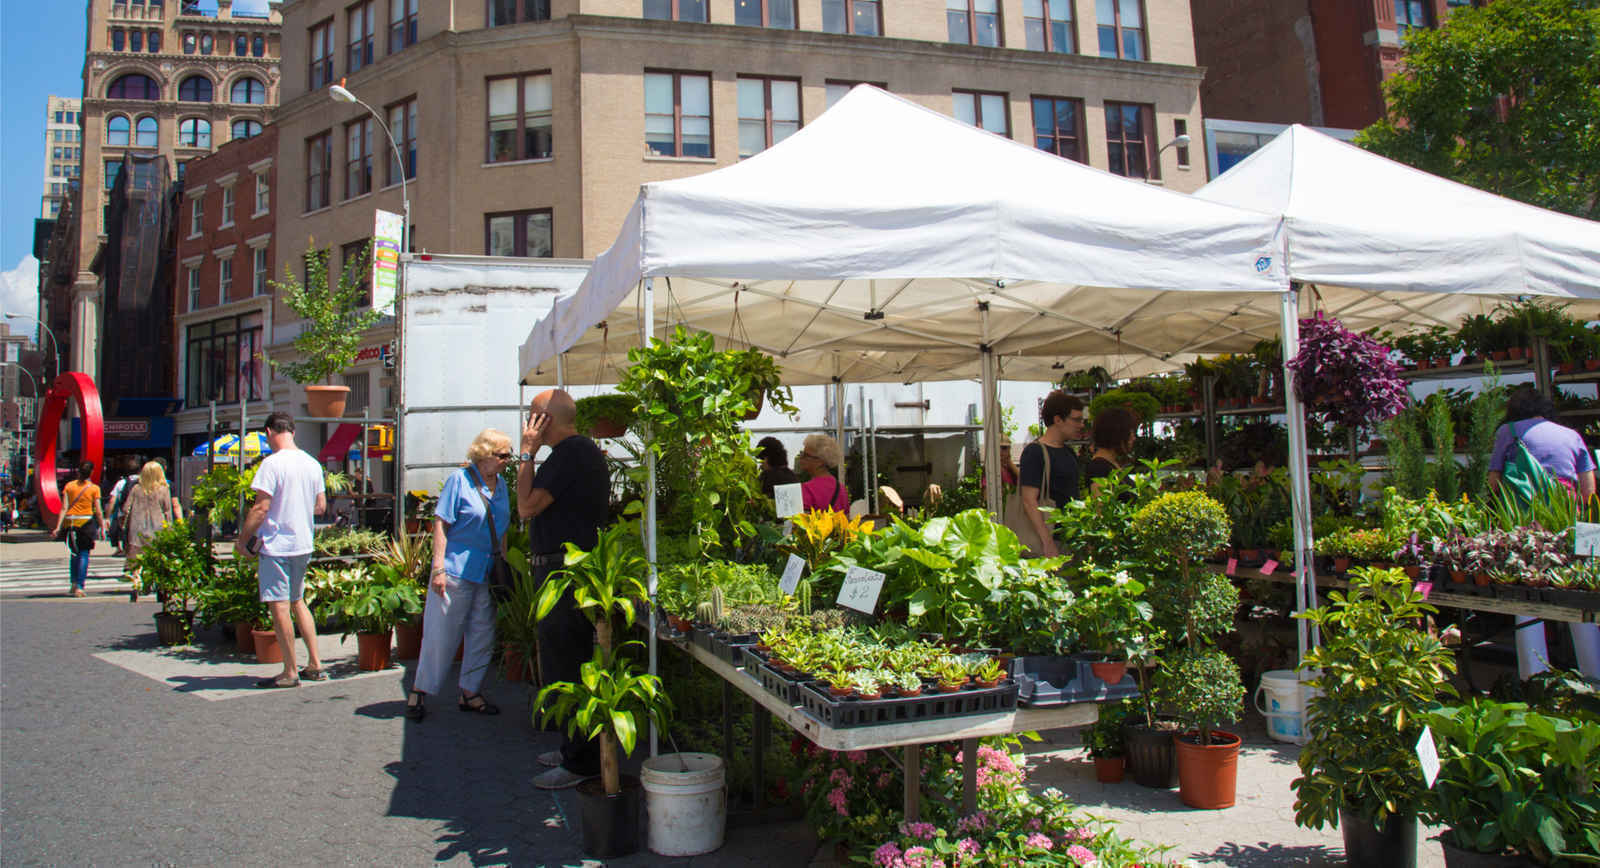 Florist selling flowers and plants in Union Square New York